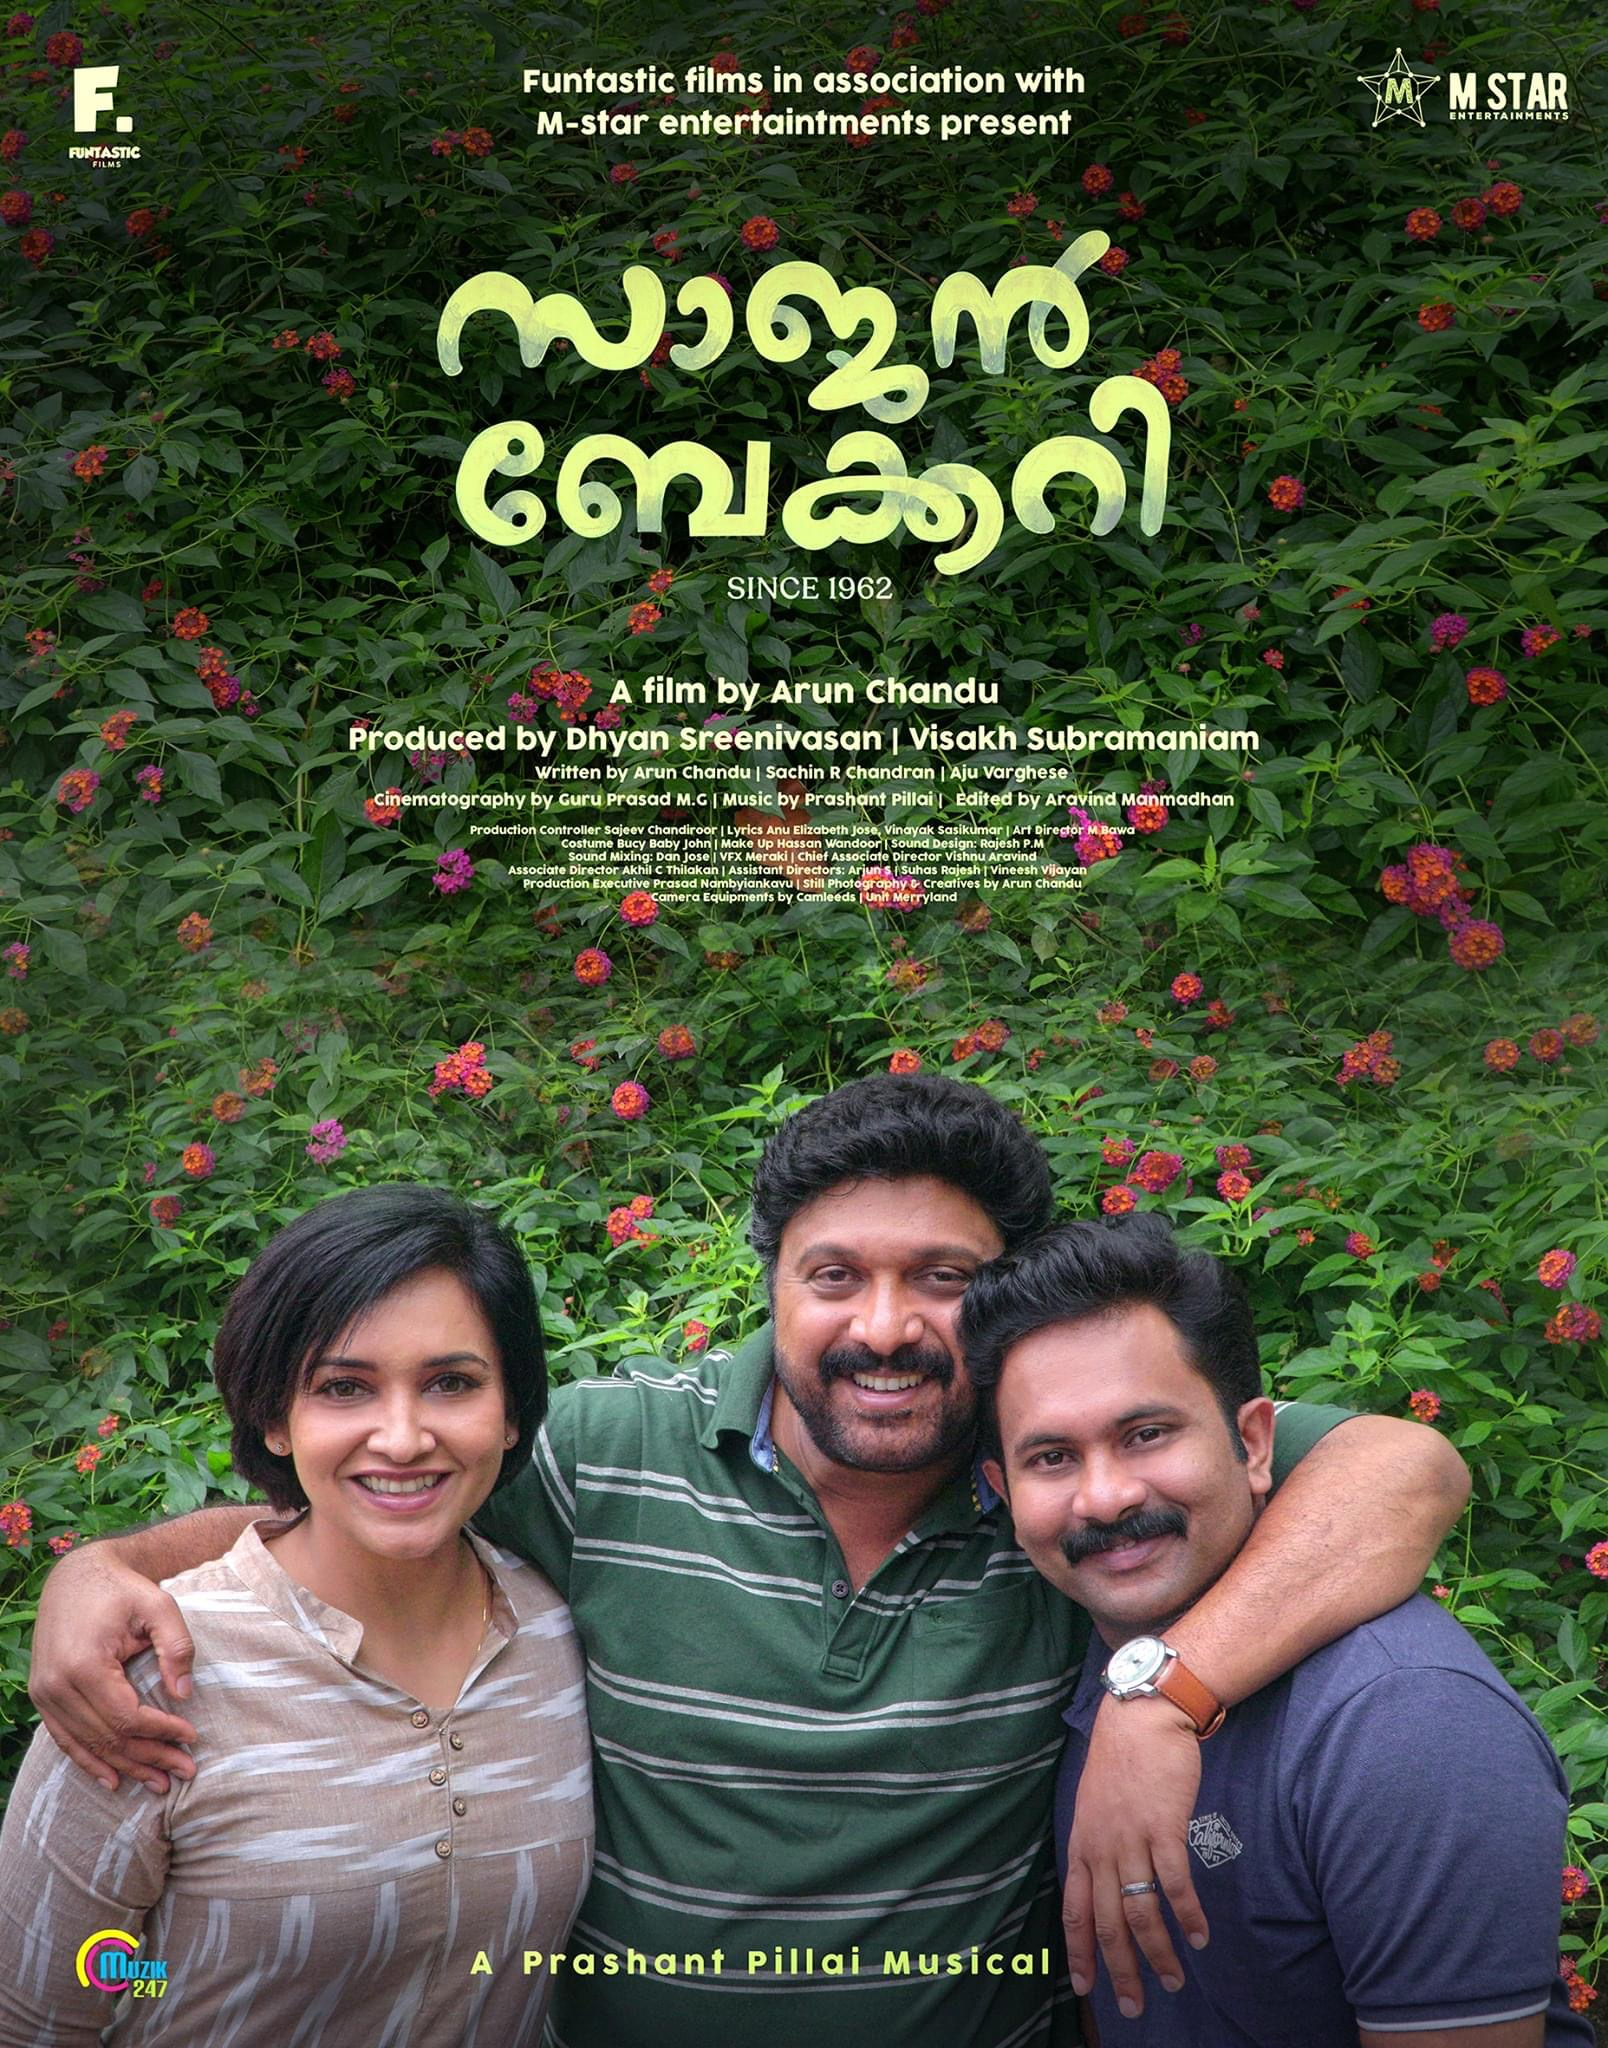 Saajan Bakery Since 1962 (2021) Malayalam 720p HEVC HDRip x265 AAC ESubs  (700MB) Full Movie Download